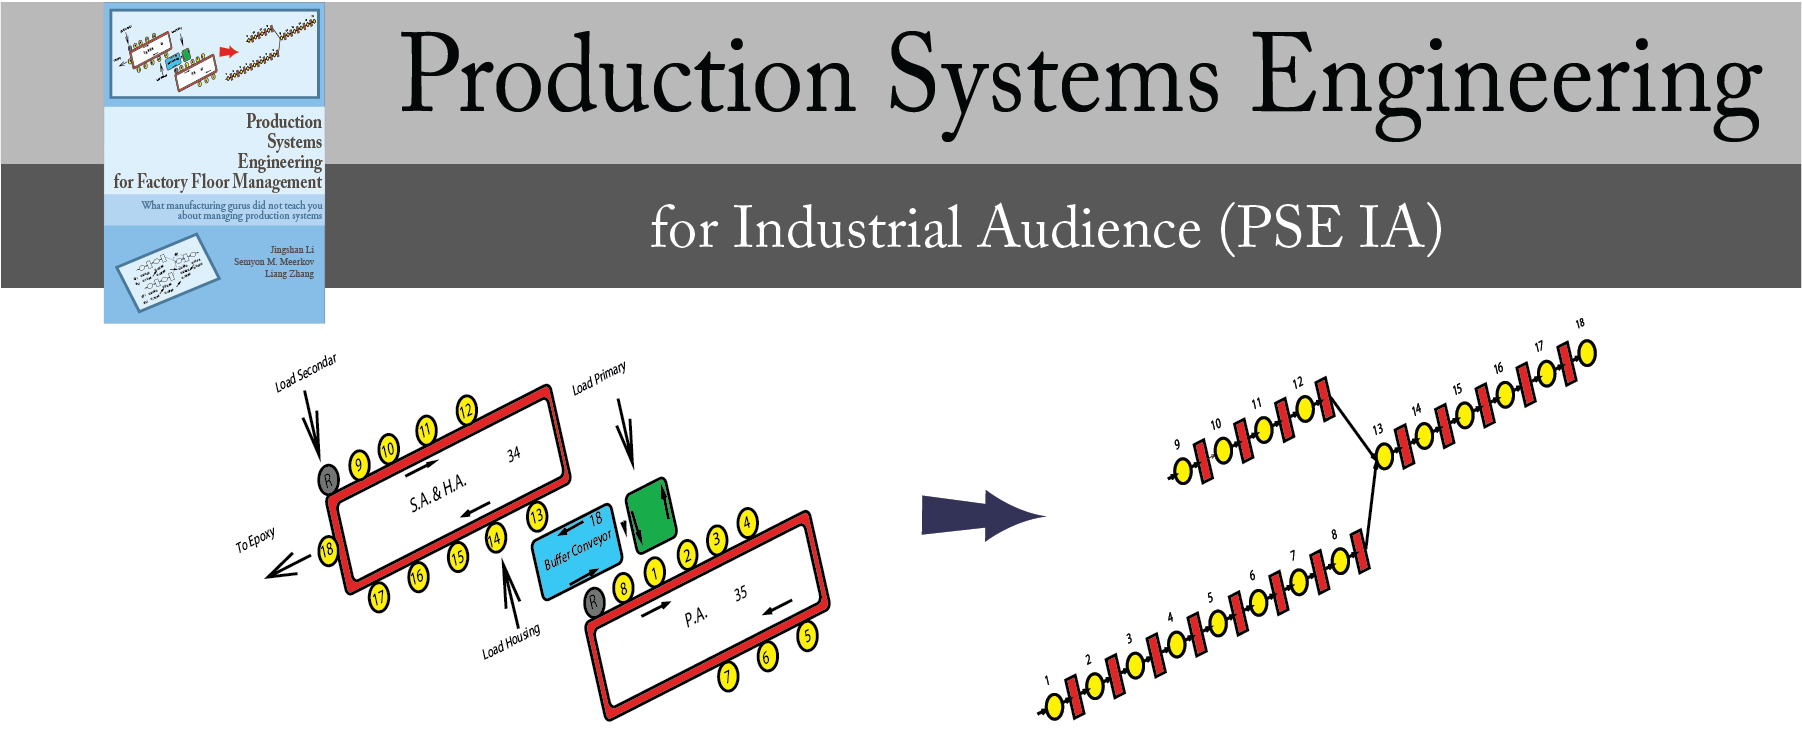 Production management as a system